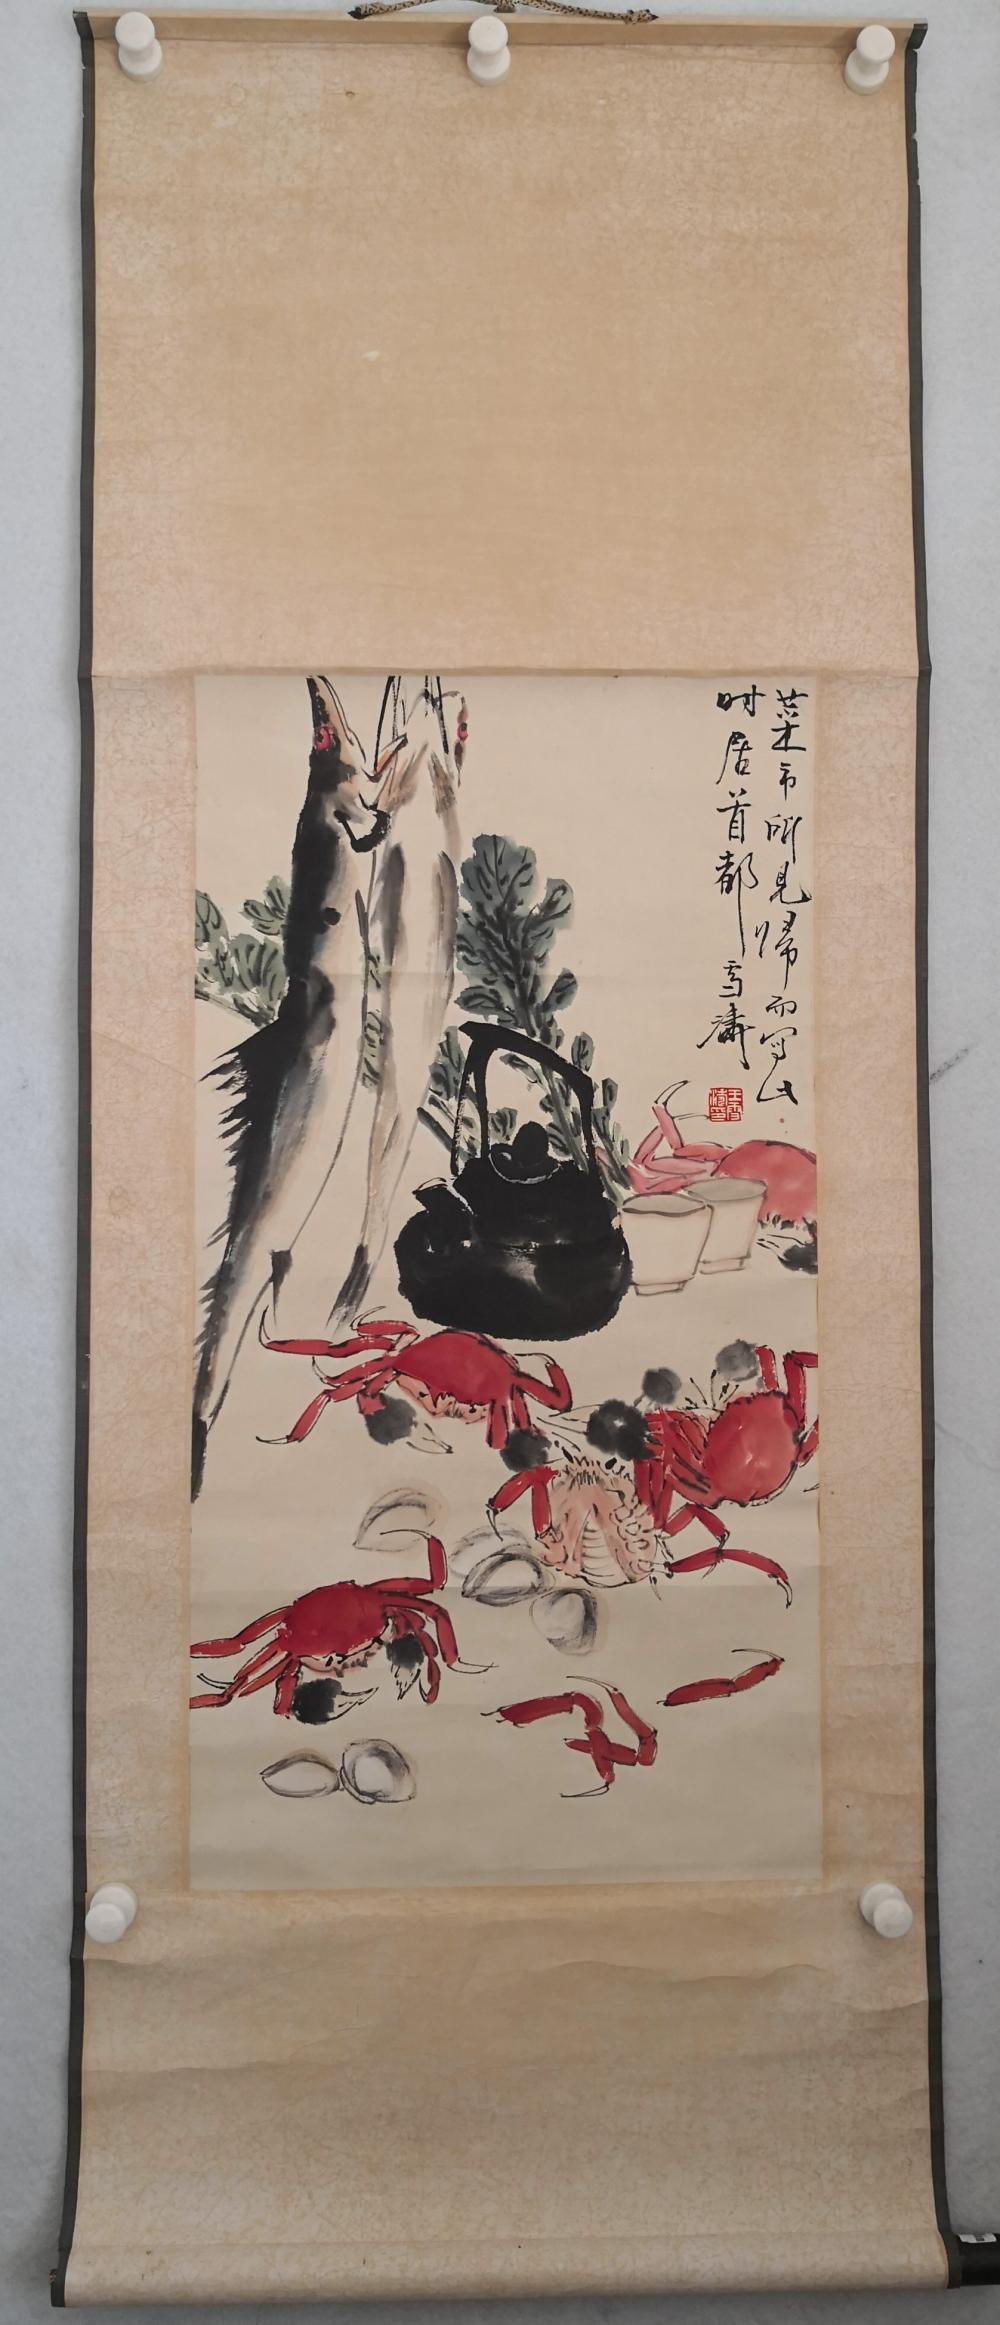 A CHINESE PAINTING BY WANG XUETAO